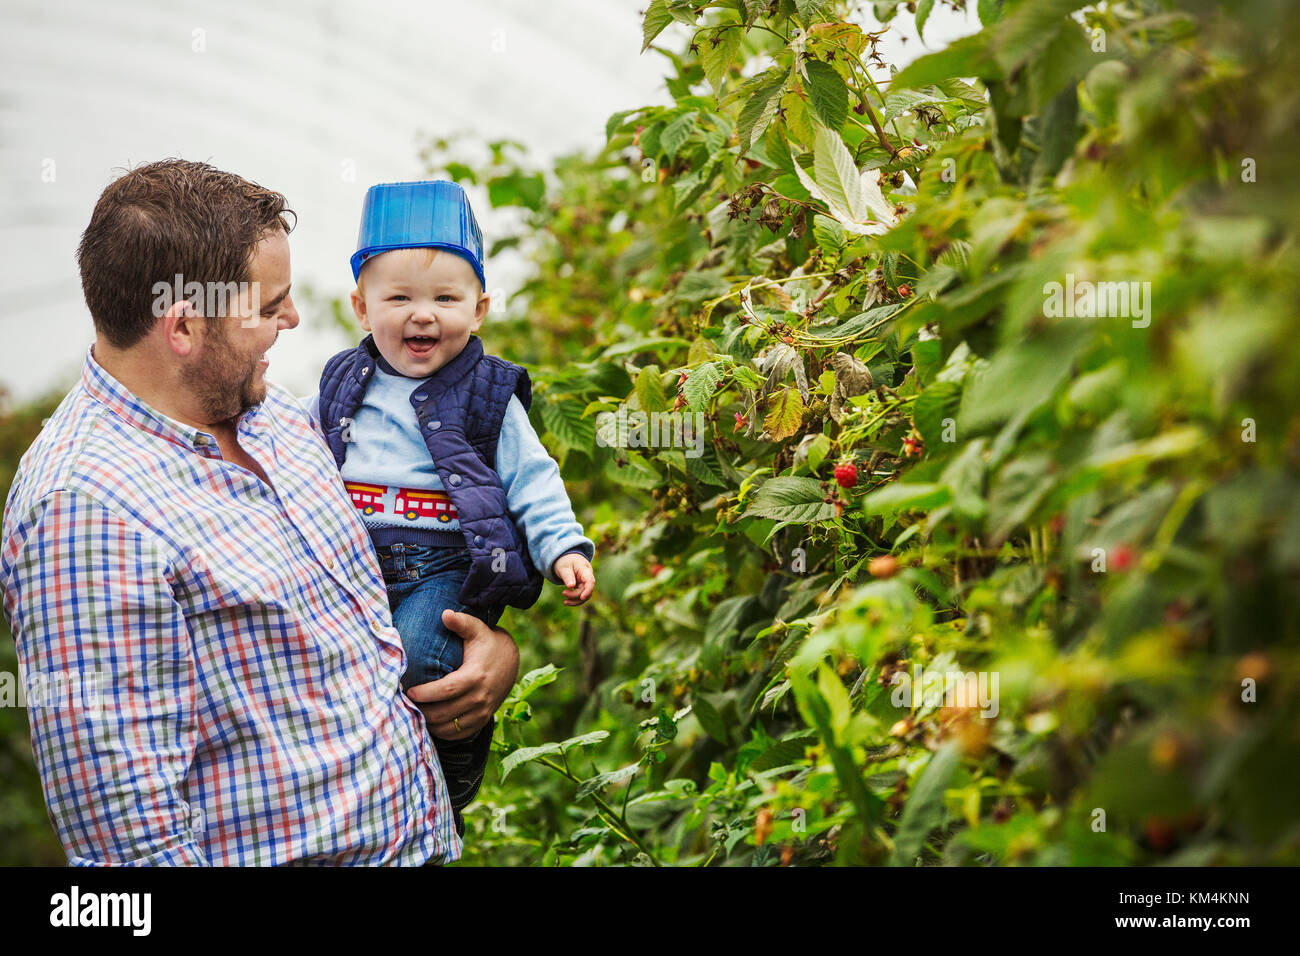 An adult man and a toddler in a polytunnel among soft fruit bushes picking autumn raspberries. Baby with a blue - Stock Image